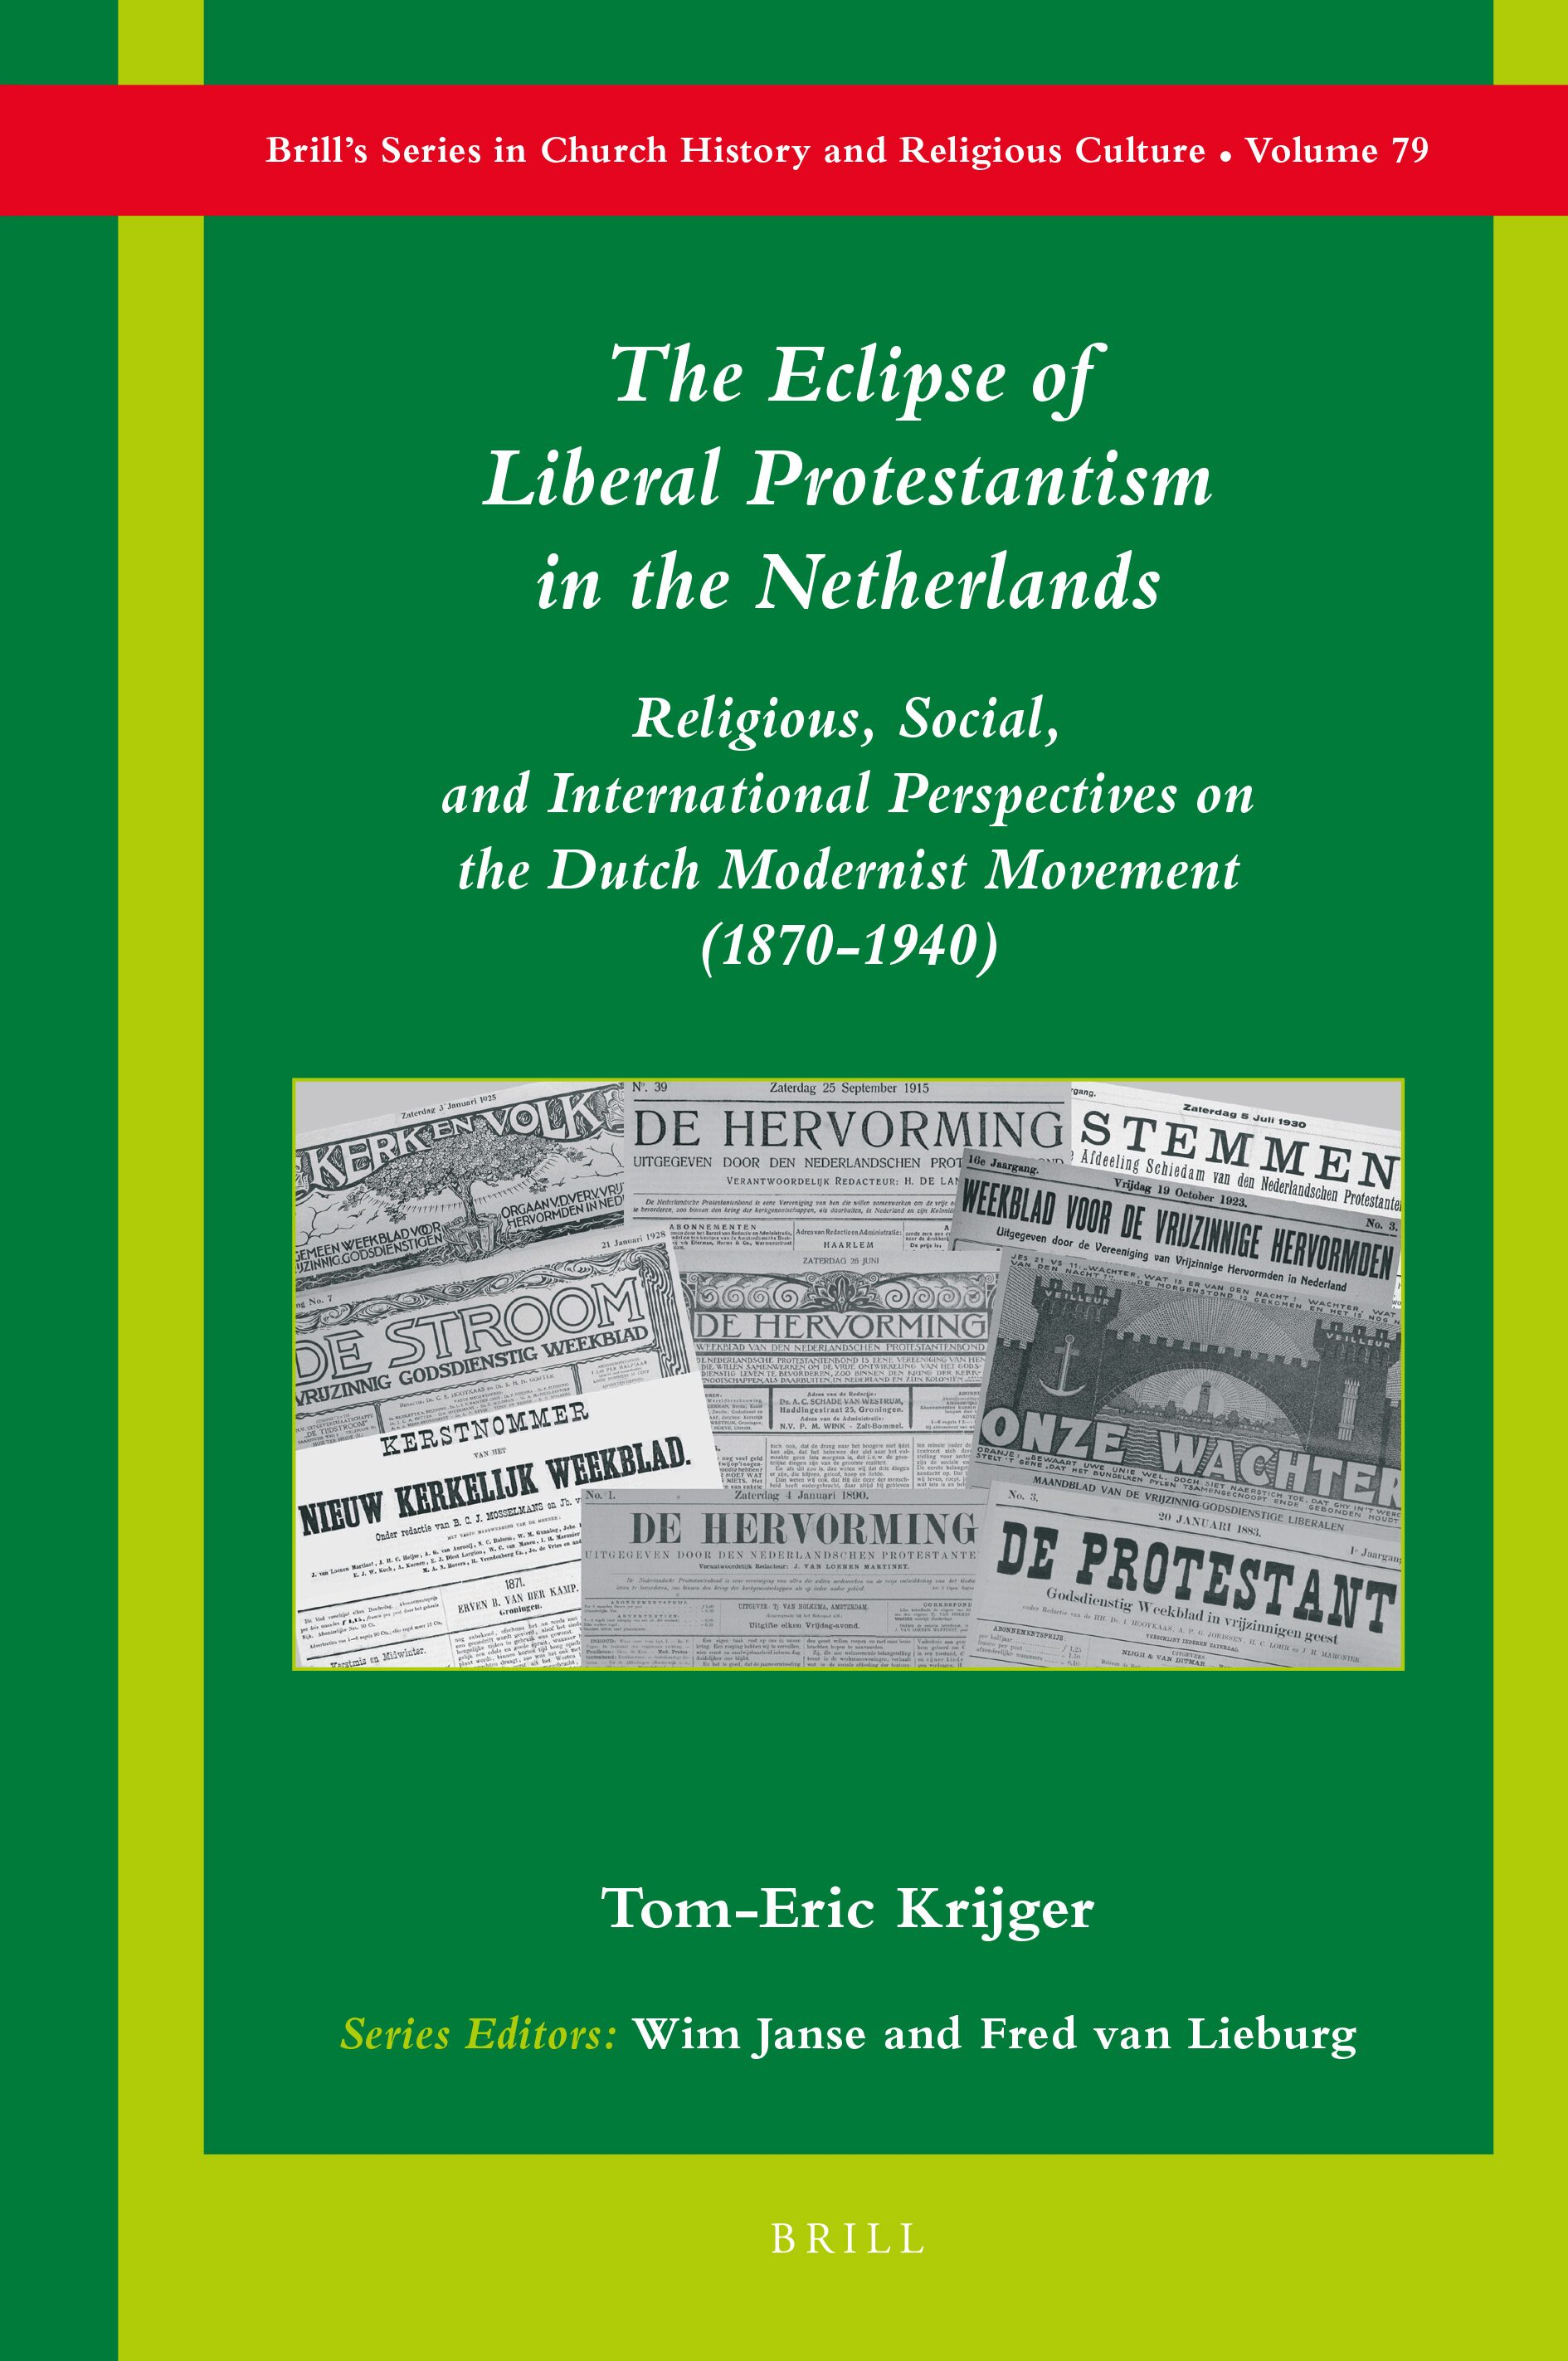 Becoming A Pillaret In The Eclipse Of Liberal Protestantism